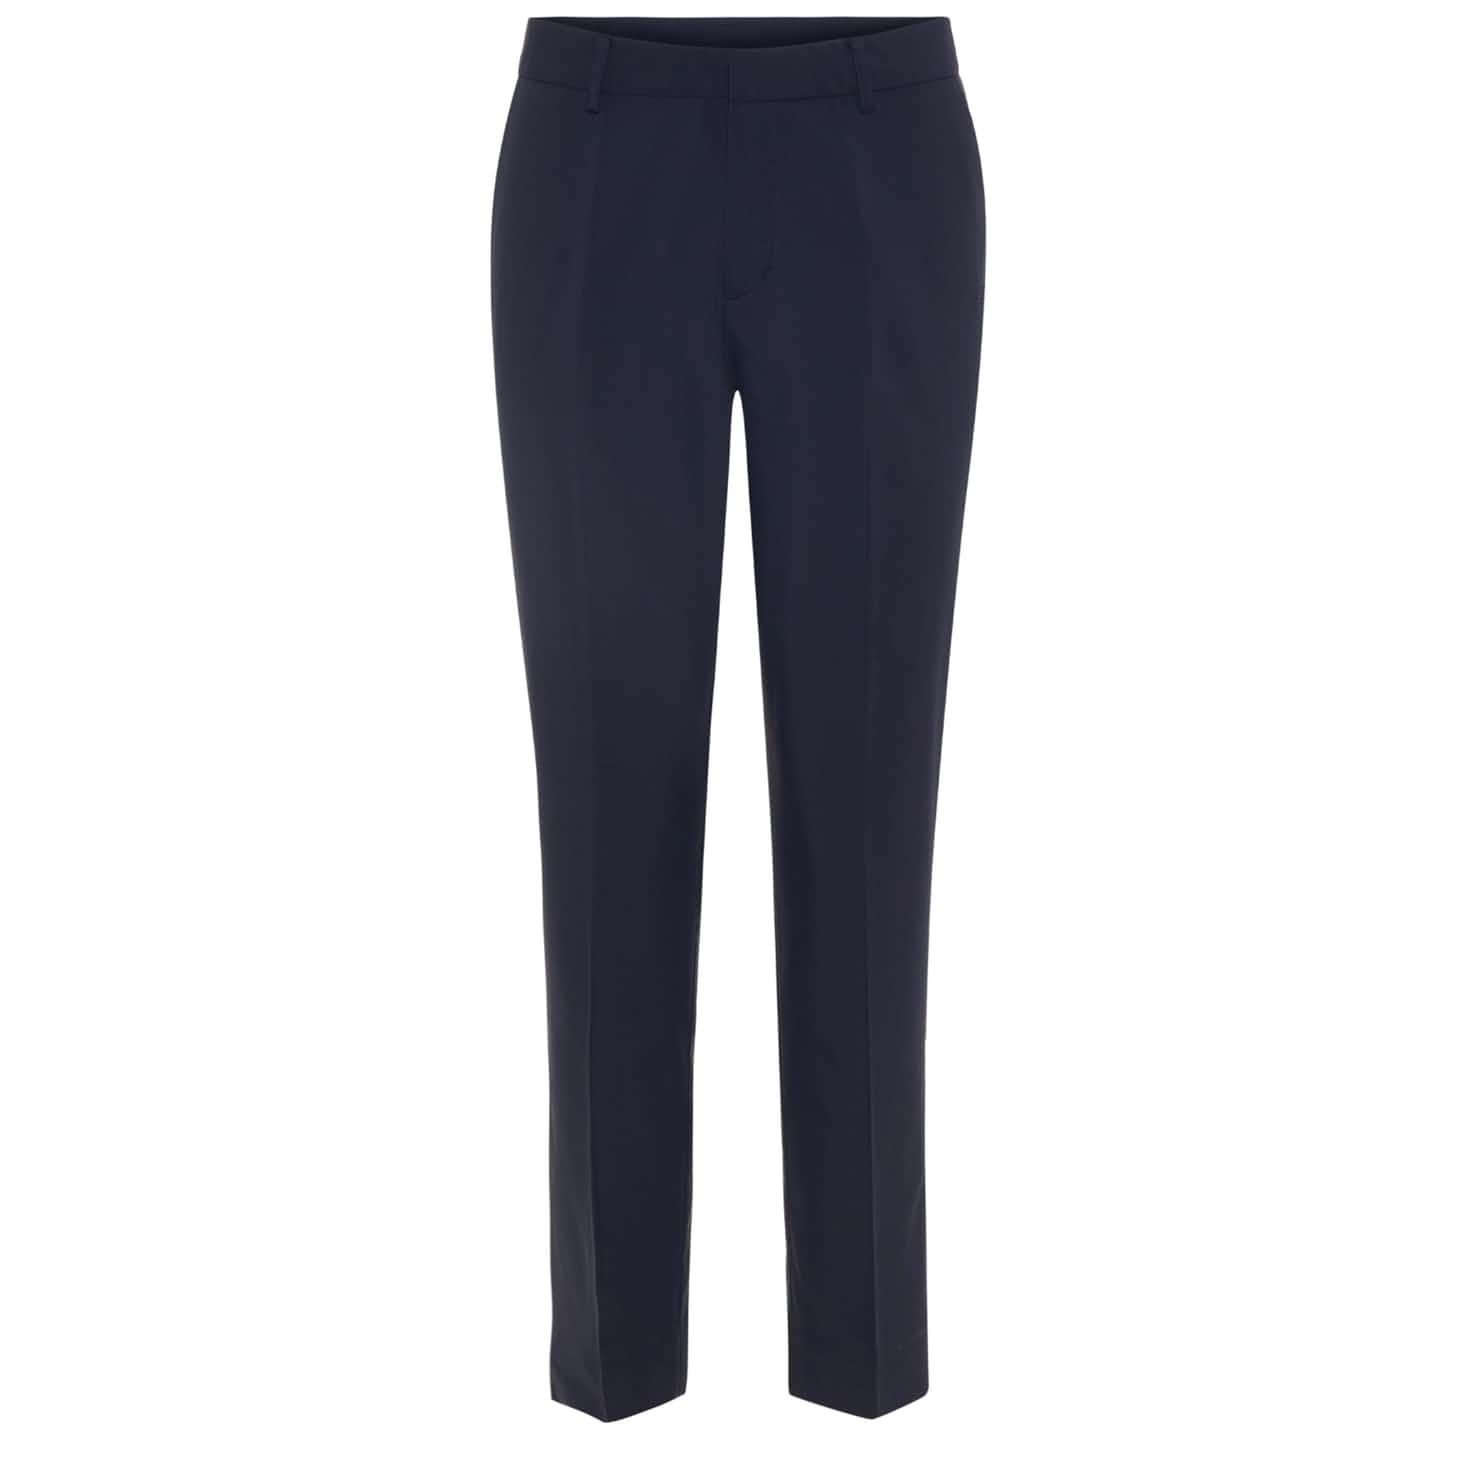 Womens Kaia Pants Light Poly Stretch JL Navy - SS20